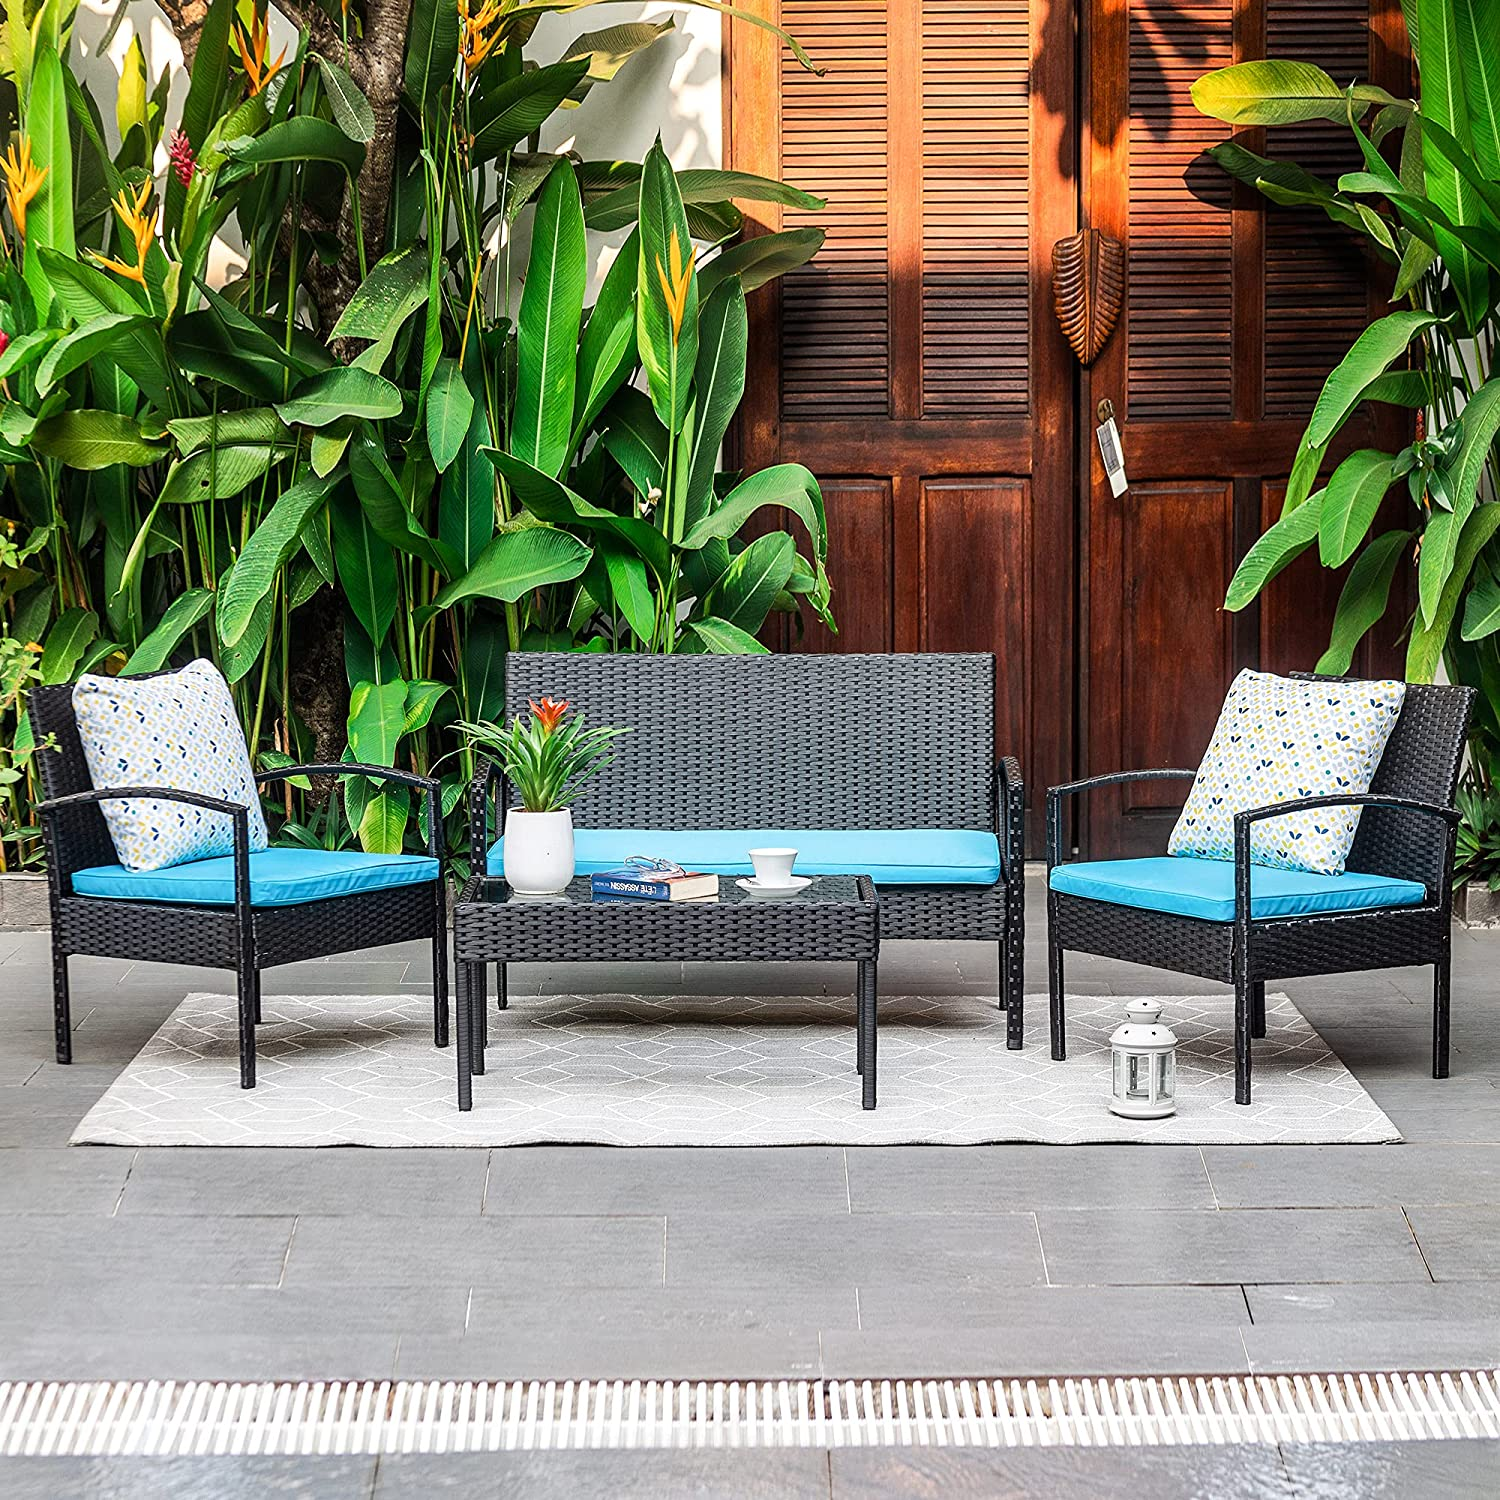 M&W 4 Piece Patio Furniture Set, Wicker Rattan Outdoor Sofa and Table Set, Patio Loveseat Chairs for Garden, Backyard, Porch, Balcony, Lawn, Poolside, Turquoise (Throw Pillow NOT Included) : Patio, Lawn & Garden